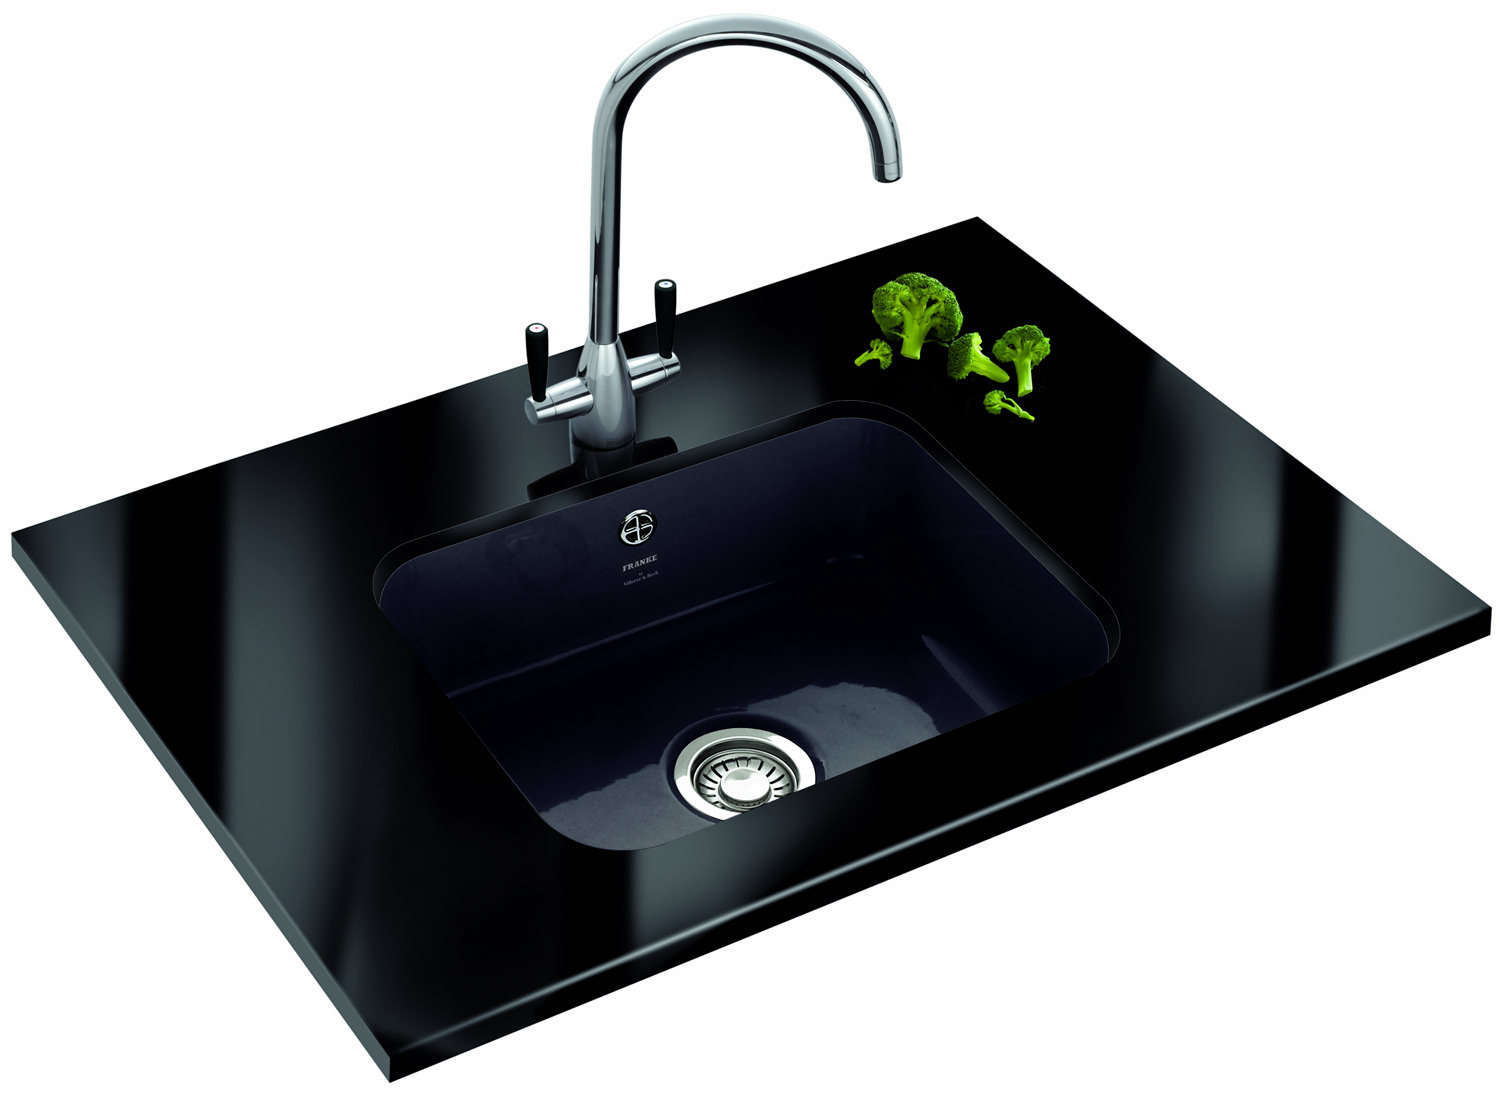 Franke Sinks And Taps : Franke VBK 110 50 Designer Pack - Black Ceramic Sink And Tap